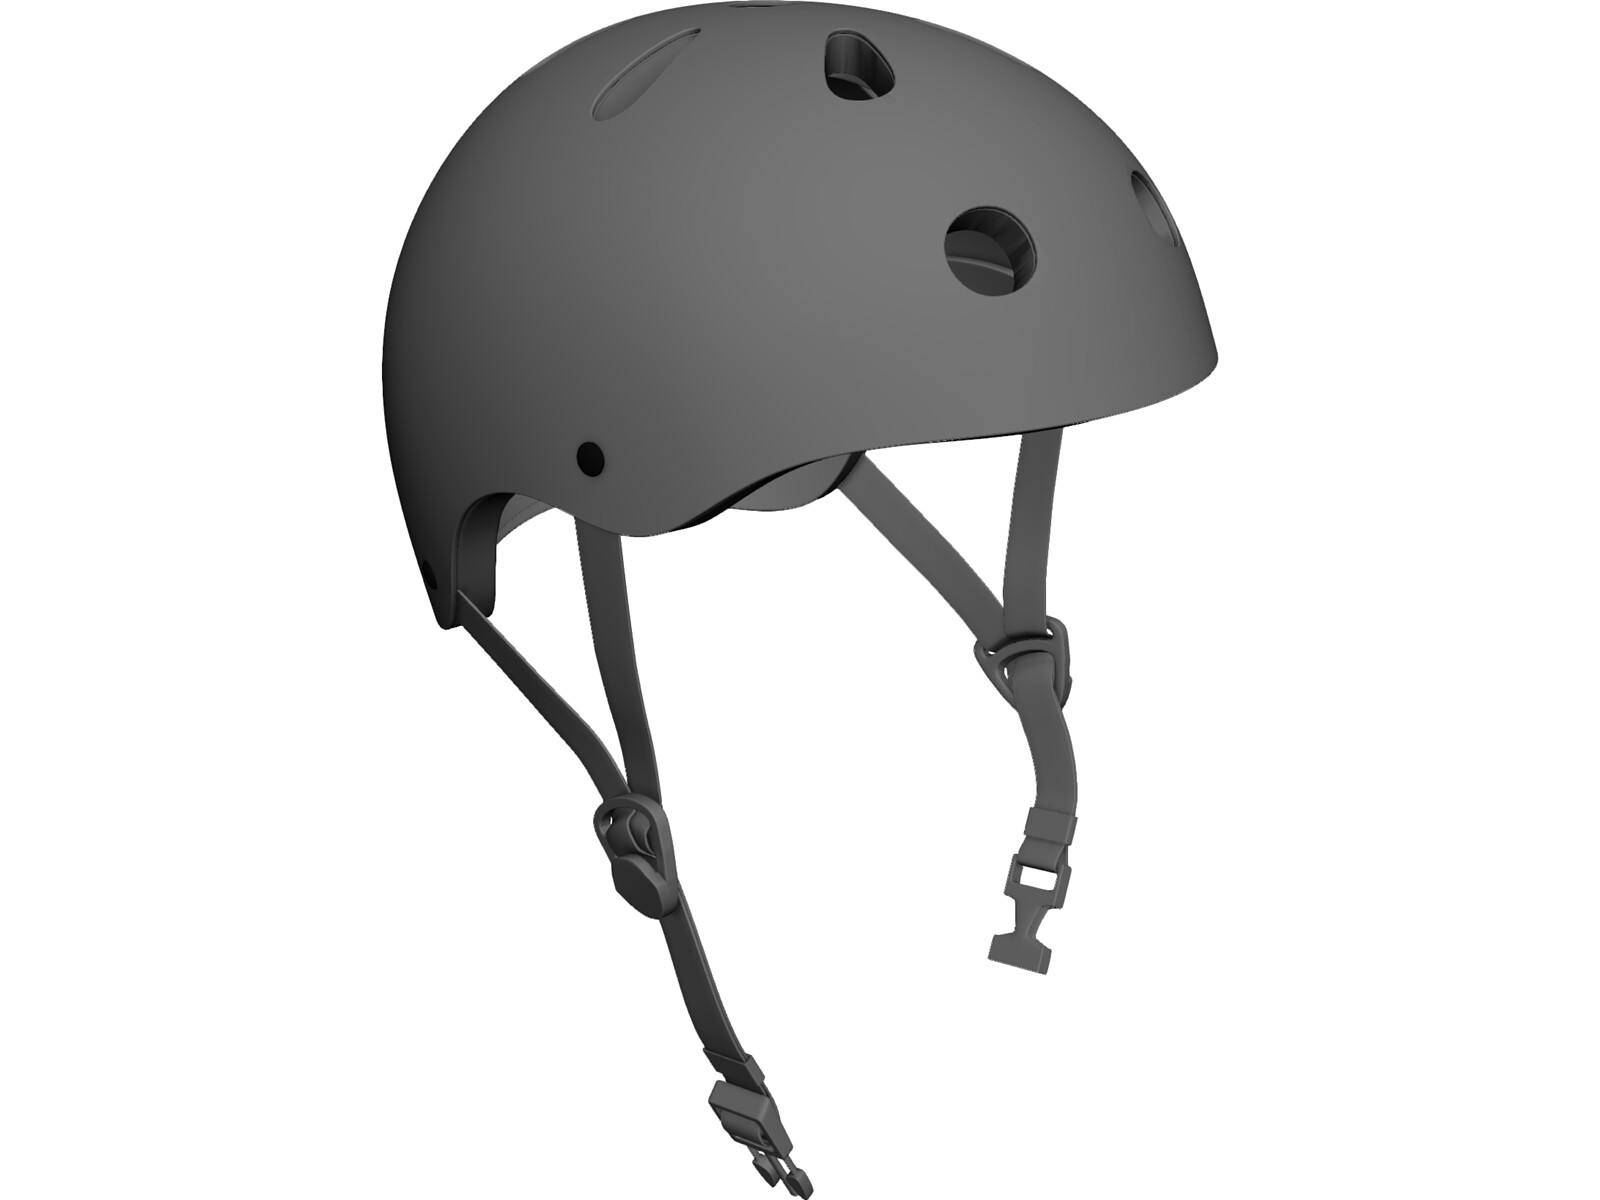 Bike Helmet 3d Model 3d Cad Browser